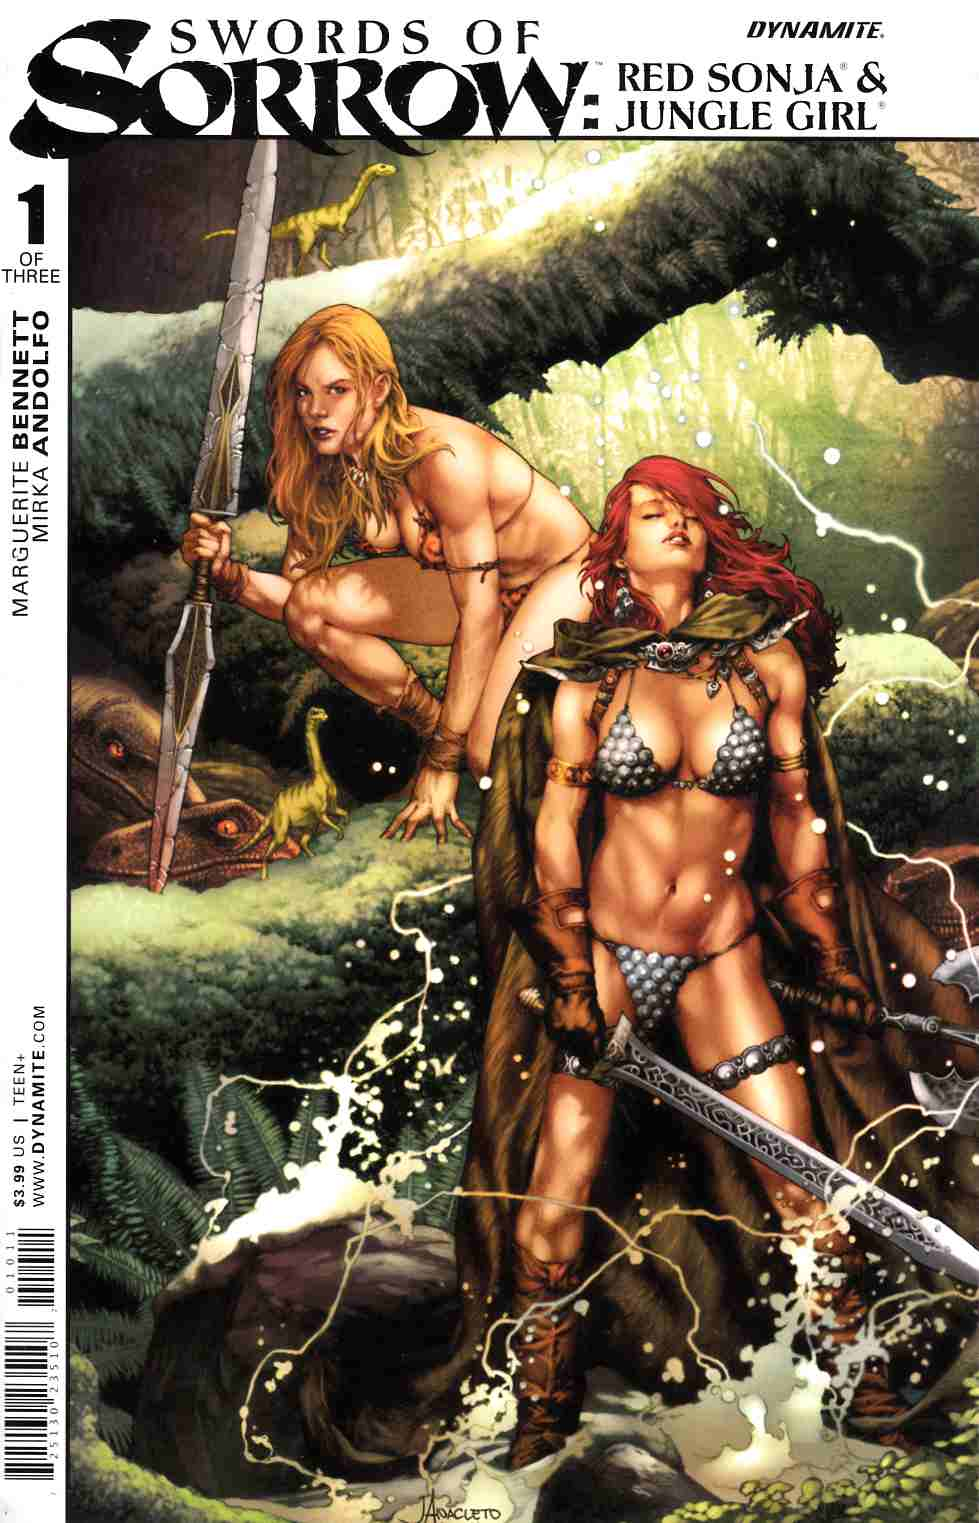 Swords of Sorrow Red Sonja and Jungle Girl #1 [Dynamite Comic] THUMBNAIL